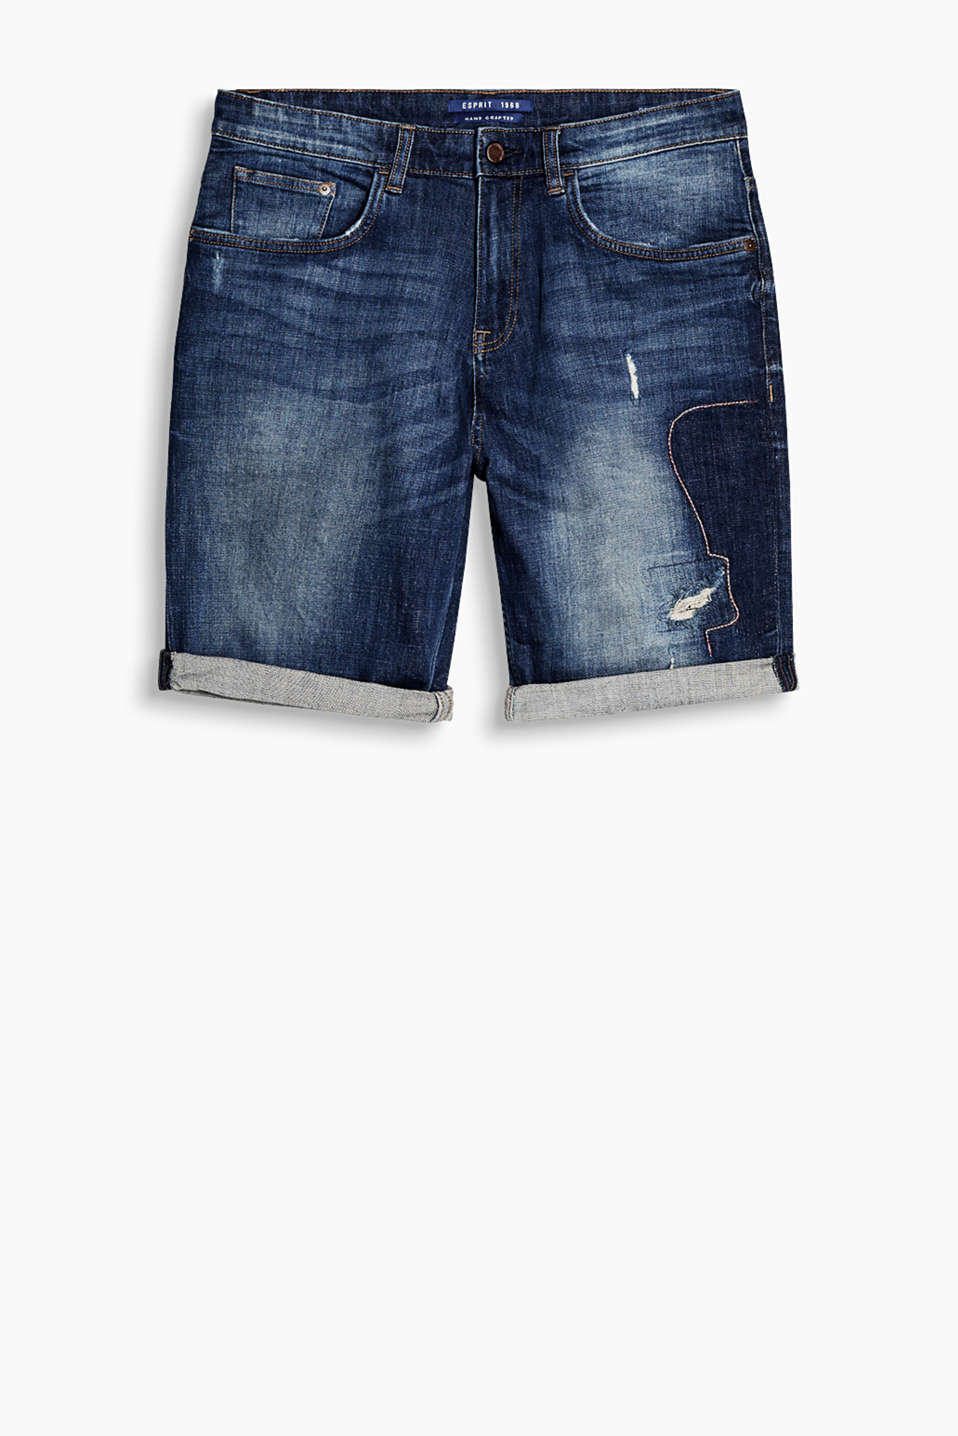 Stretch denim shorts in an urban wash with a distressed finish